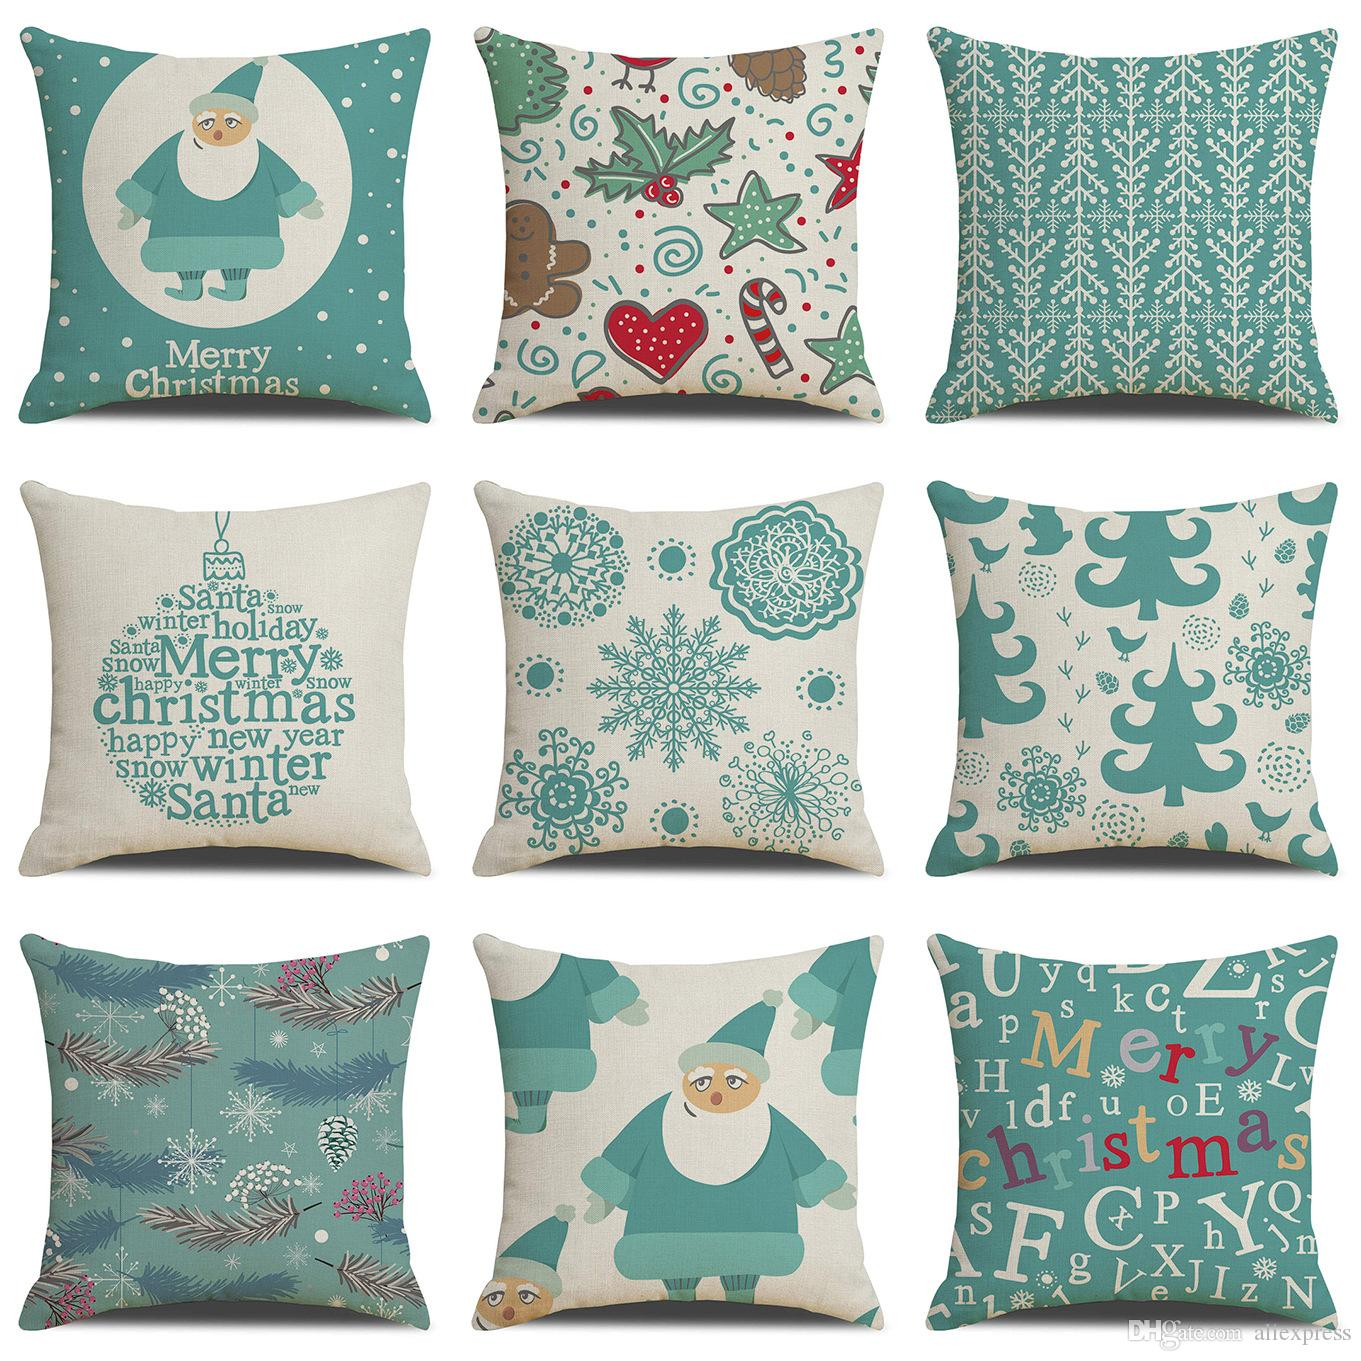 9 Designs 45 45cm Merry Christmas Cover For Cushion Cute Deer Decorative Pillowcases On Pillows For Sofa Bed Happy Elk Bed Cover Cushions Organic